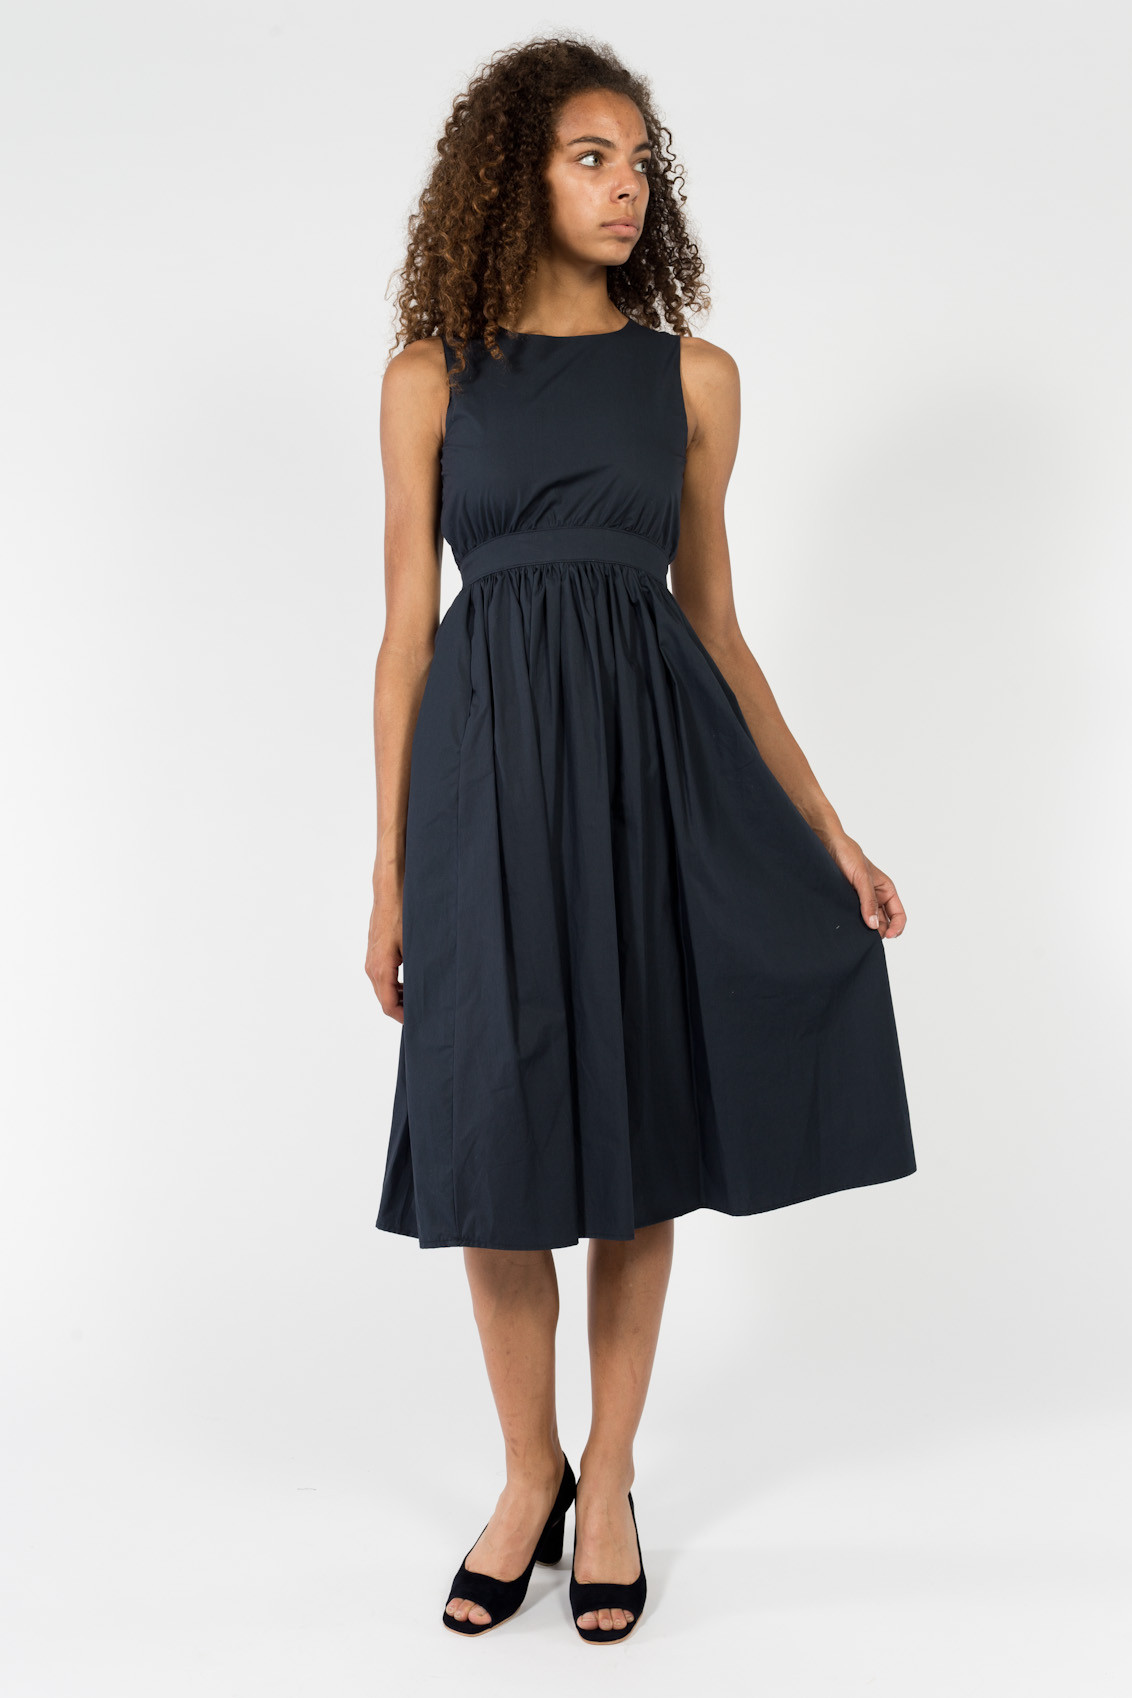 Objects Without Meaning Button Back Dress From Idun